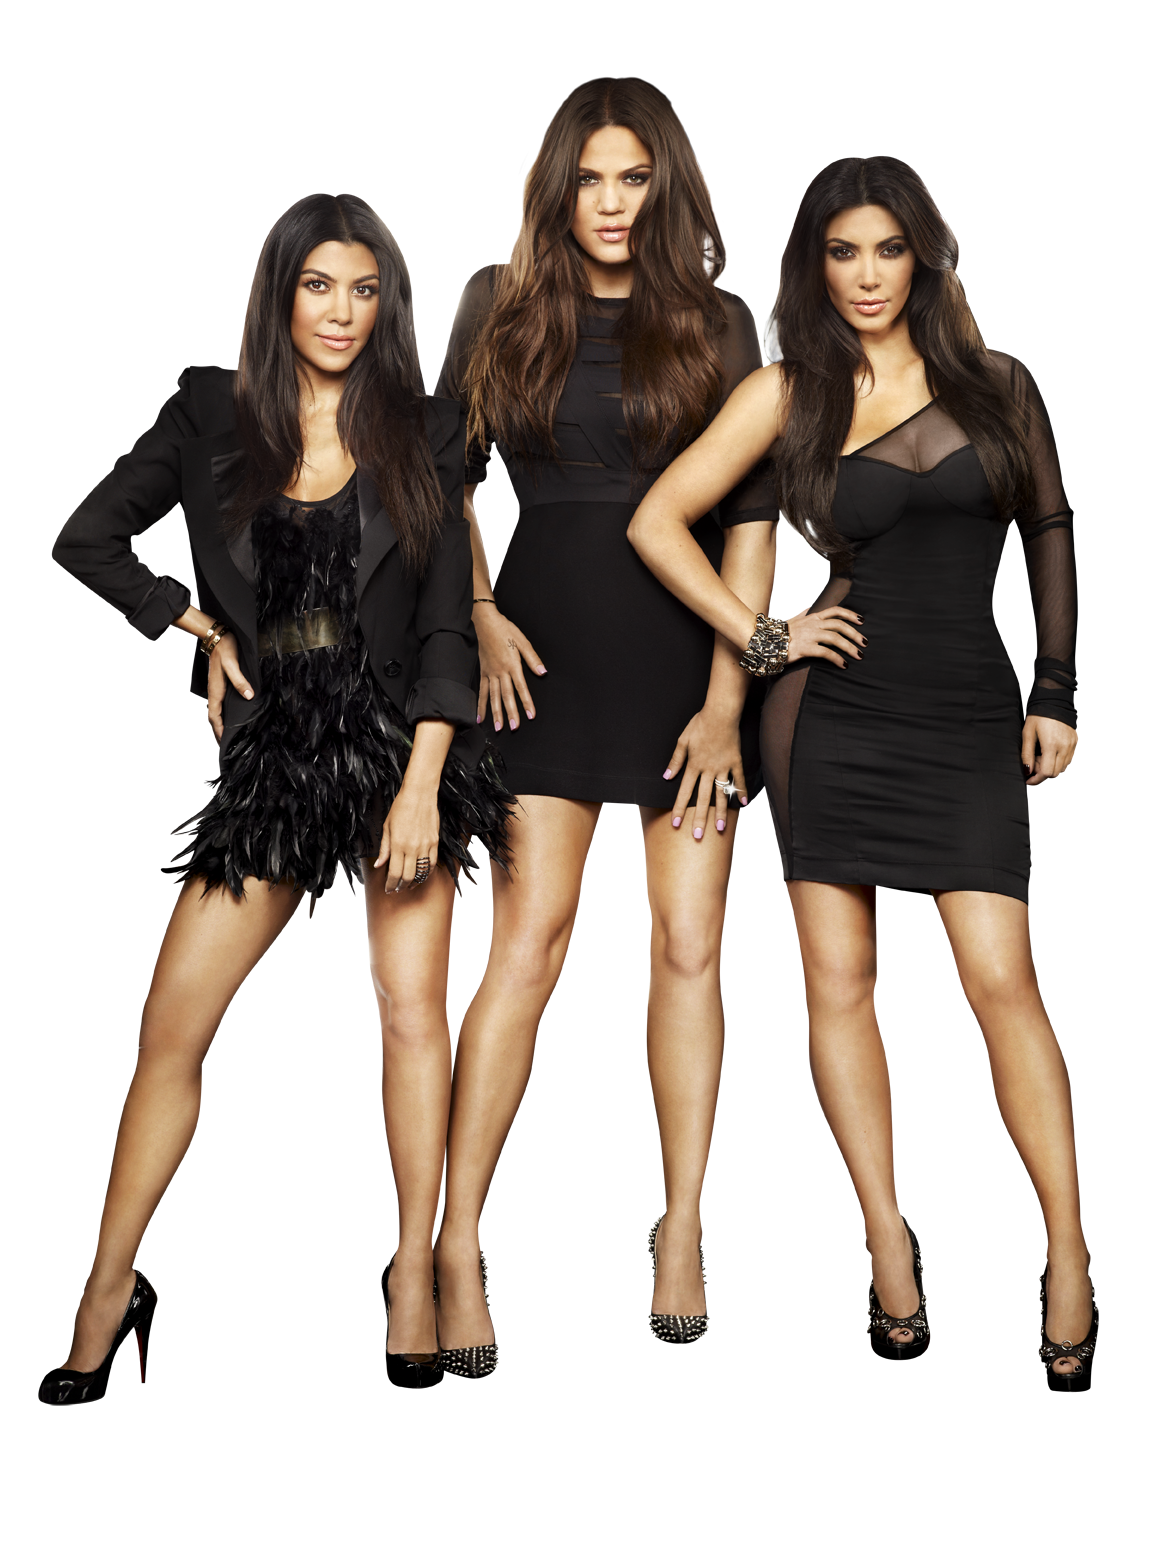 Kim kardashian break the internet png. Kardashians i don t